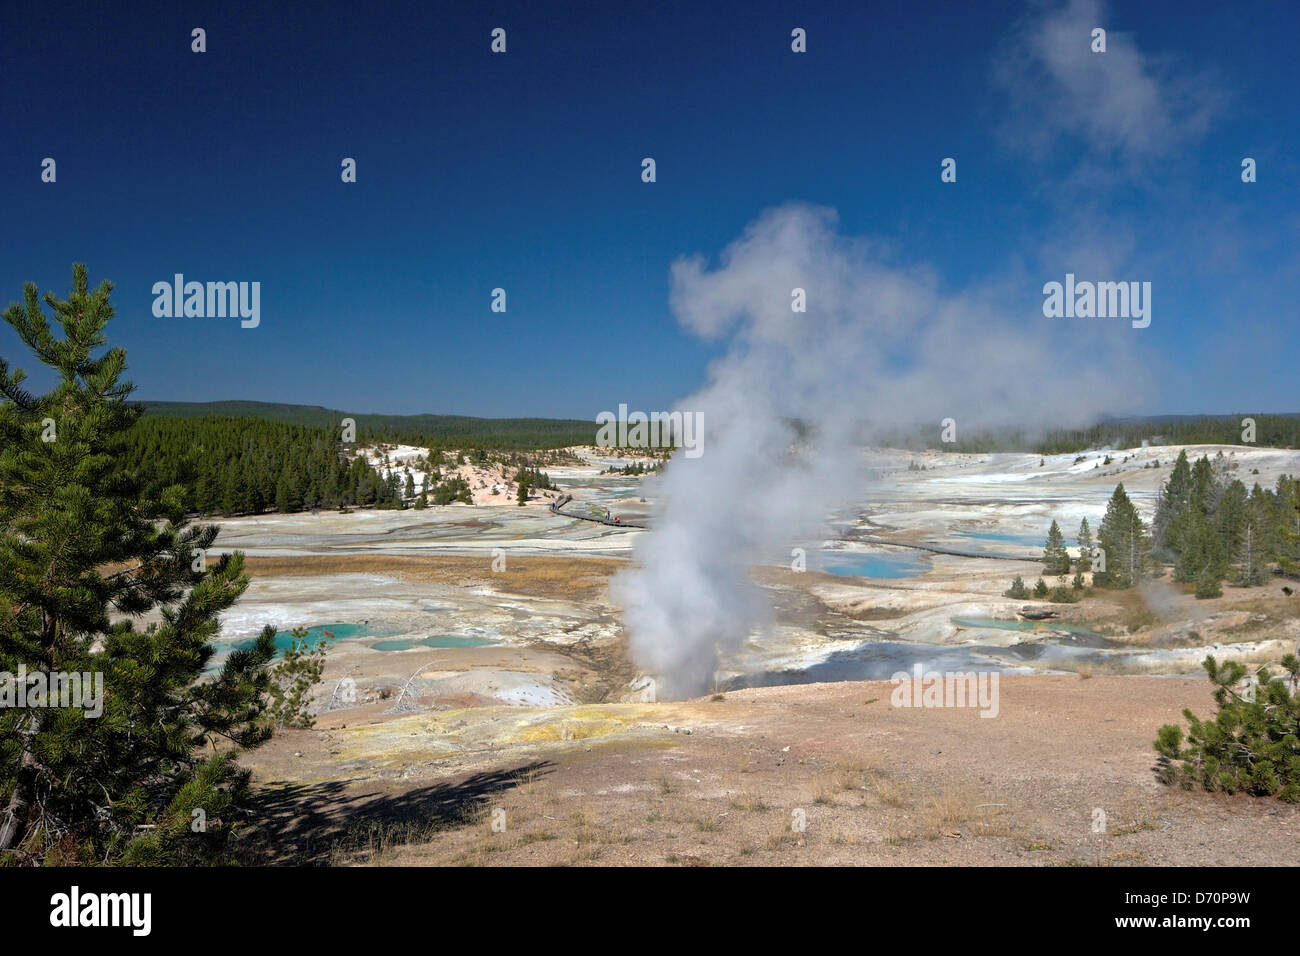 USA, Wyoming, Yellowstone National Park, Norris Geyser Basin, Black Growler Steam Vent in Porcelain Basin Stock Photo